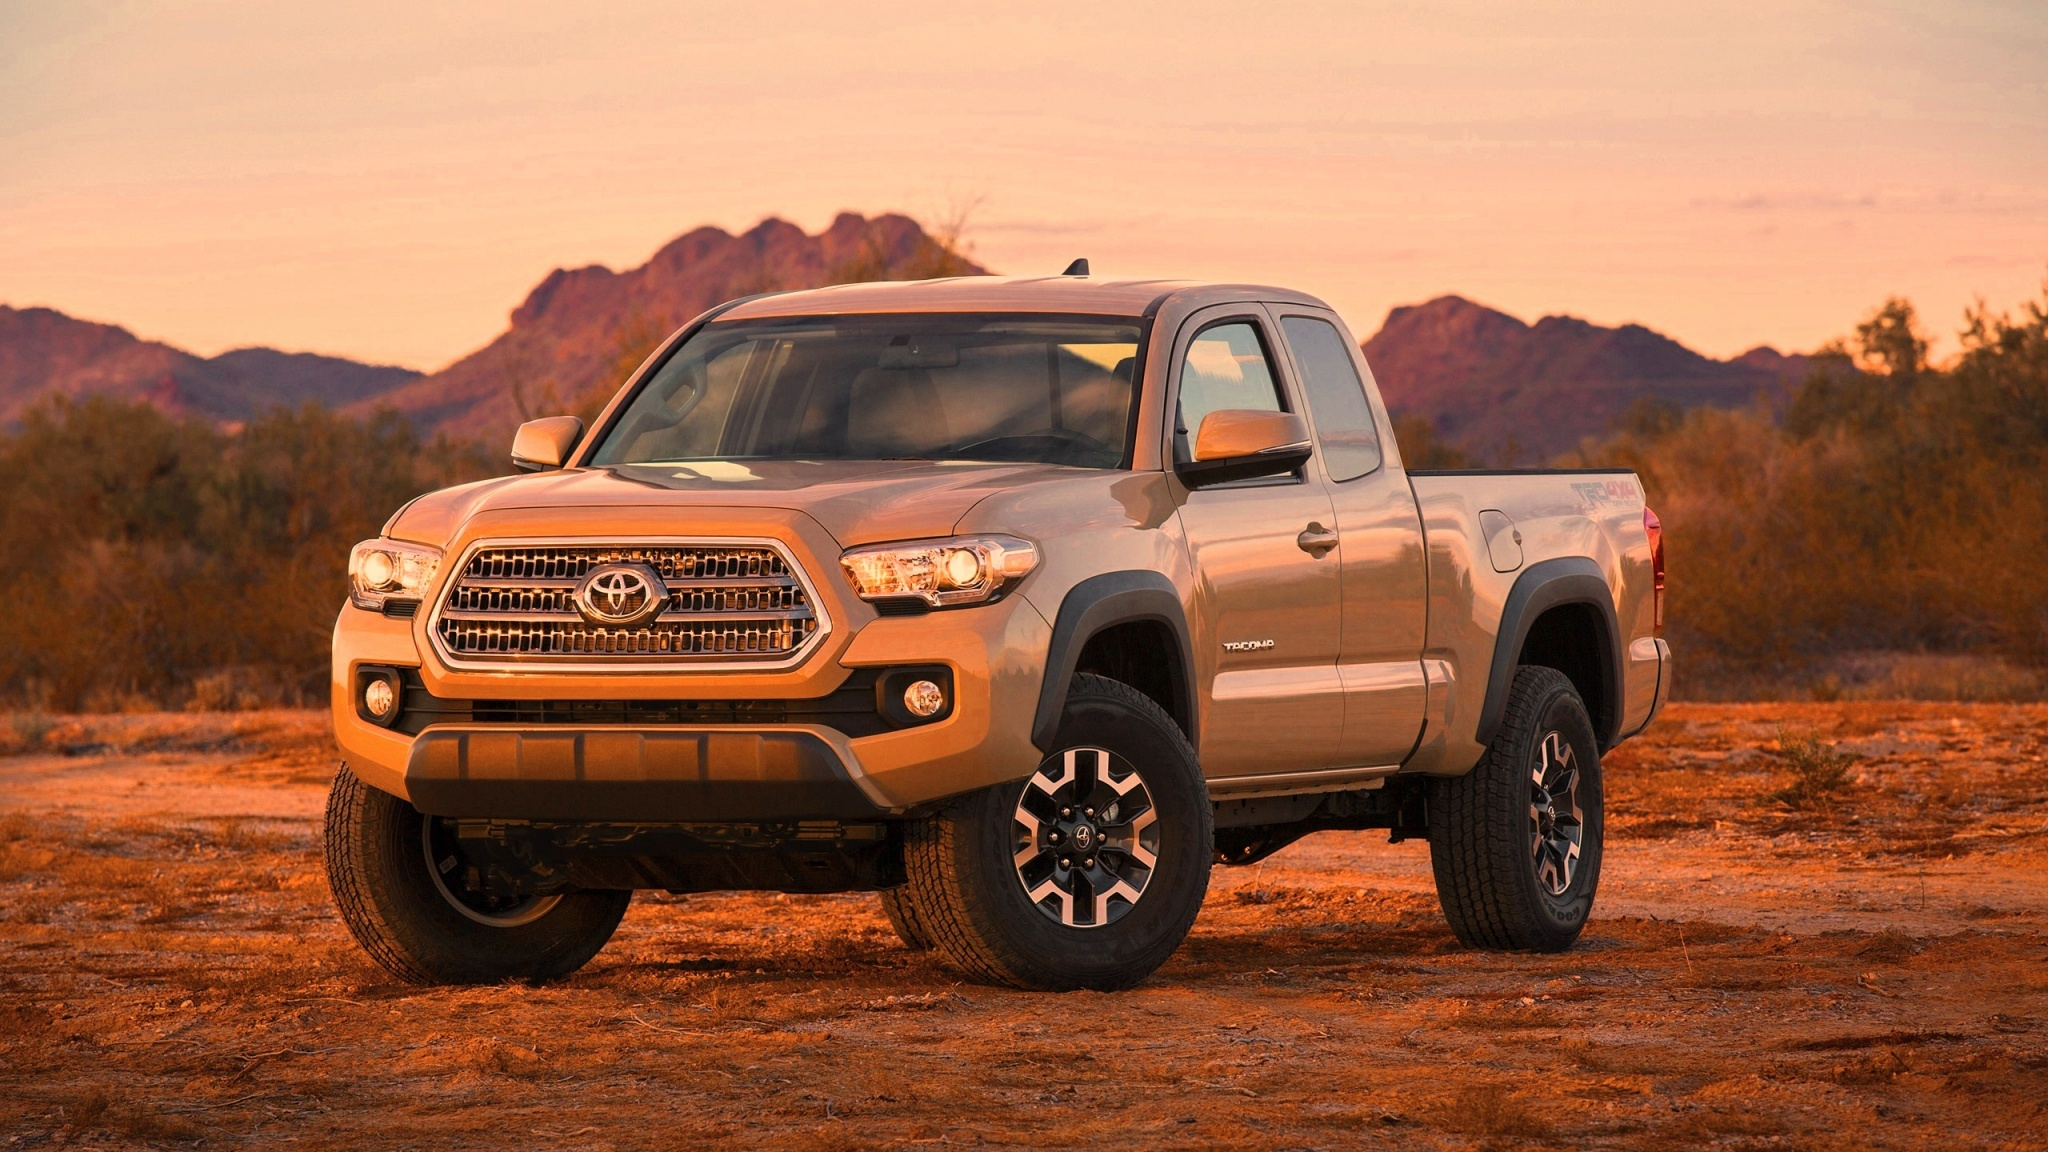 toyota tacoma trd off road 2016 wallpapers 2048x1152 775579. Black Bedroom Furniture Sets. Home Design Ideas